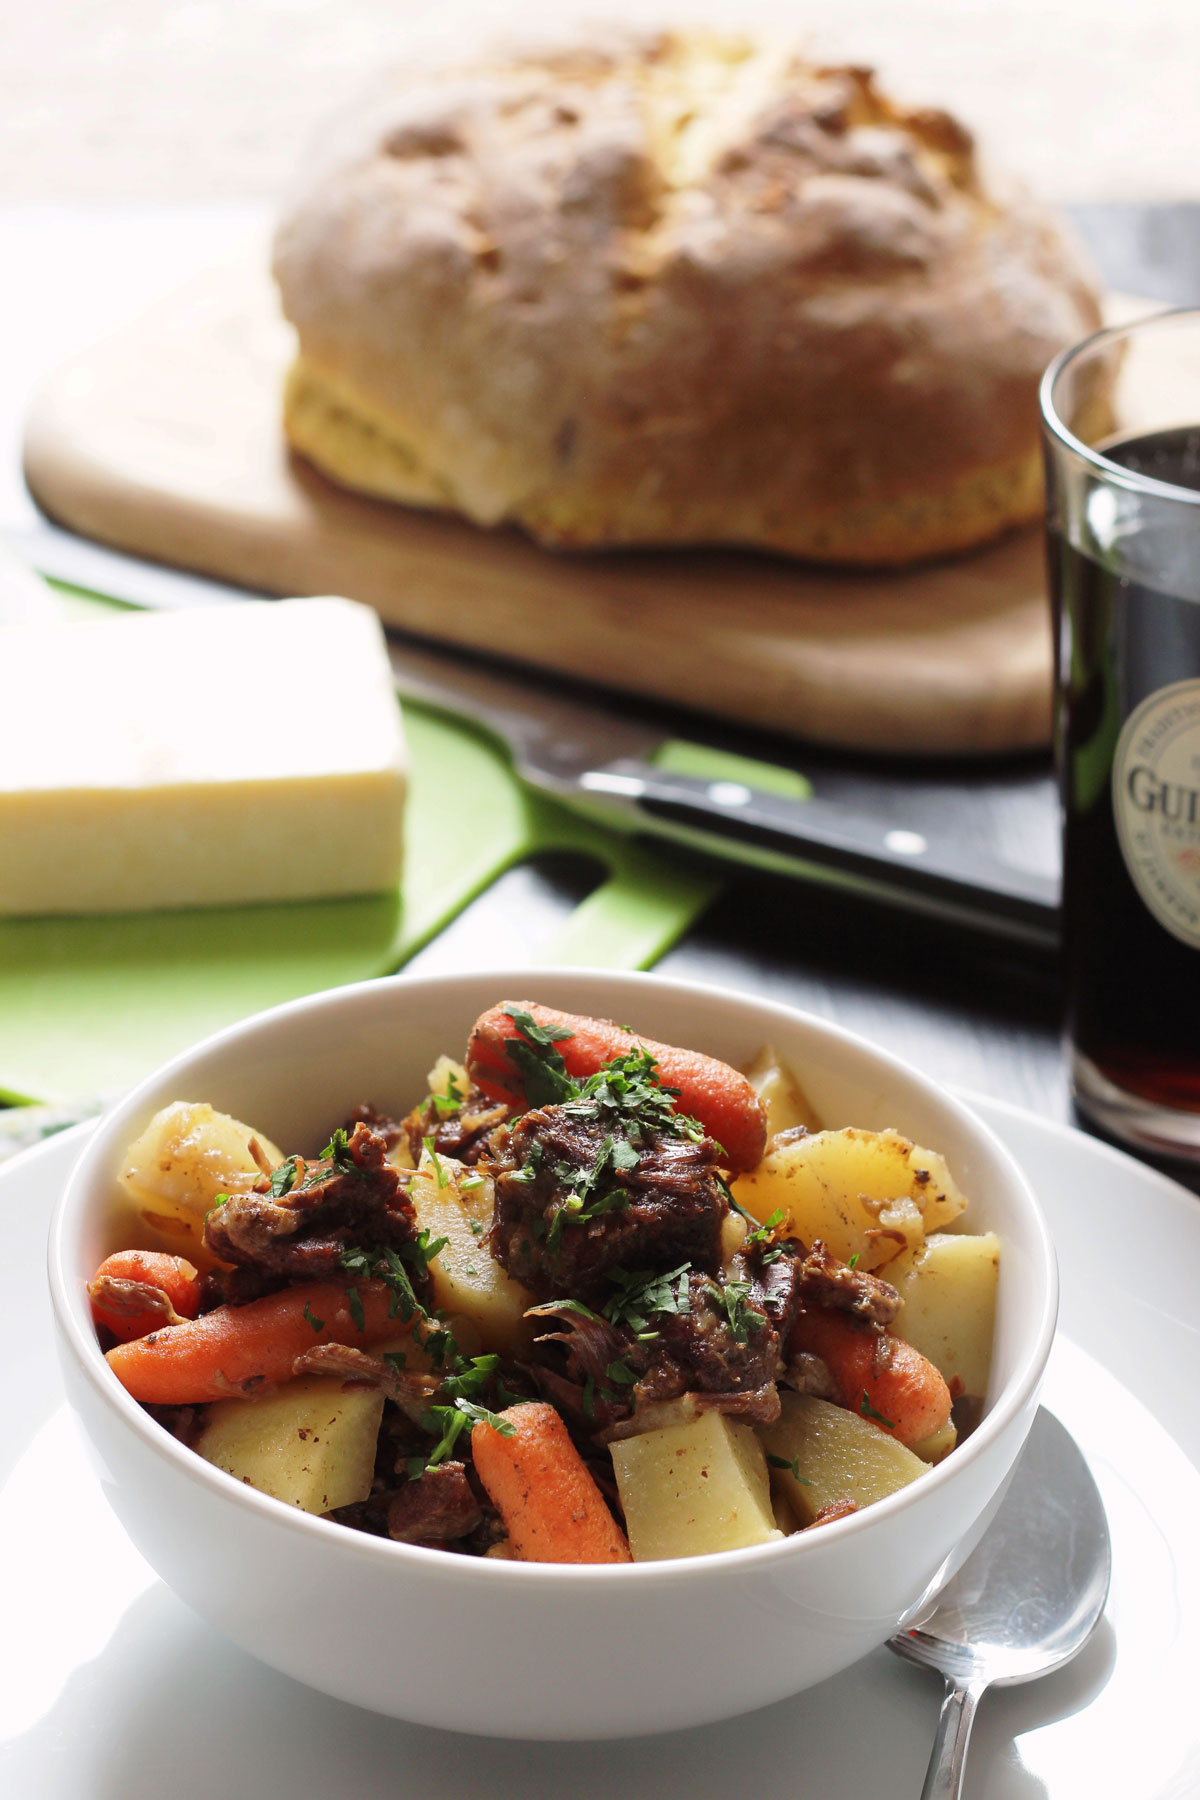 bowl of stew on table with bread cheese and ale